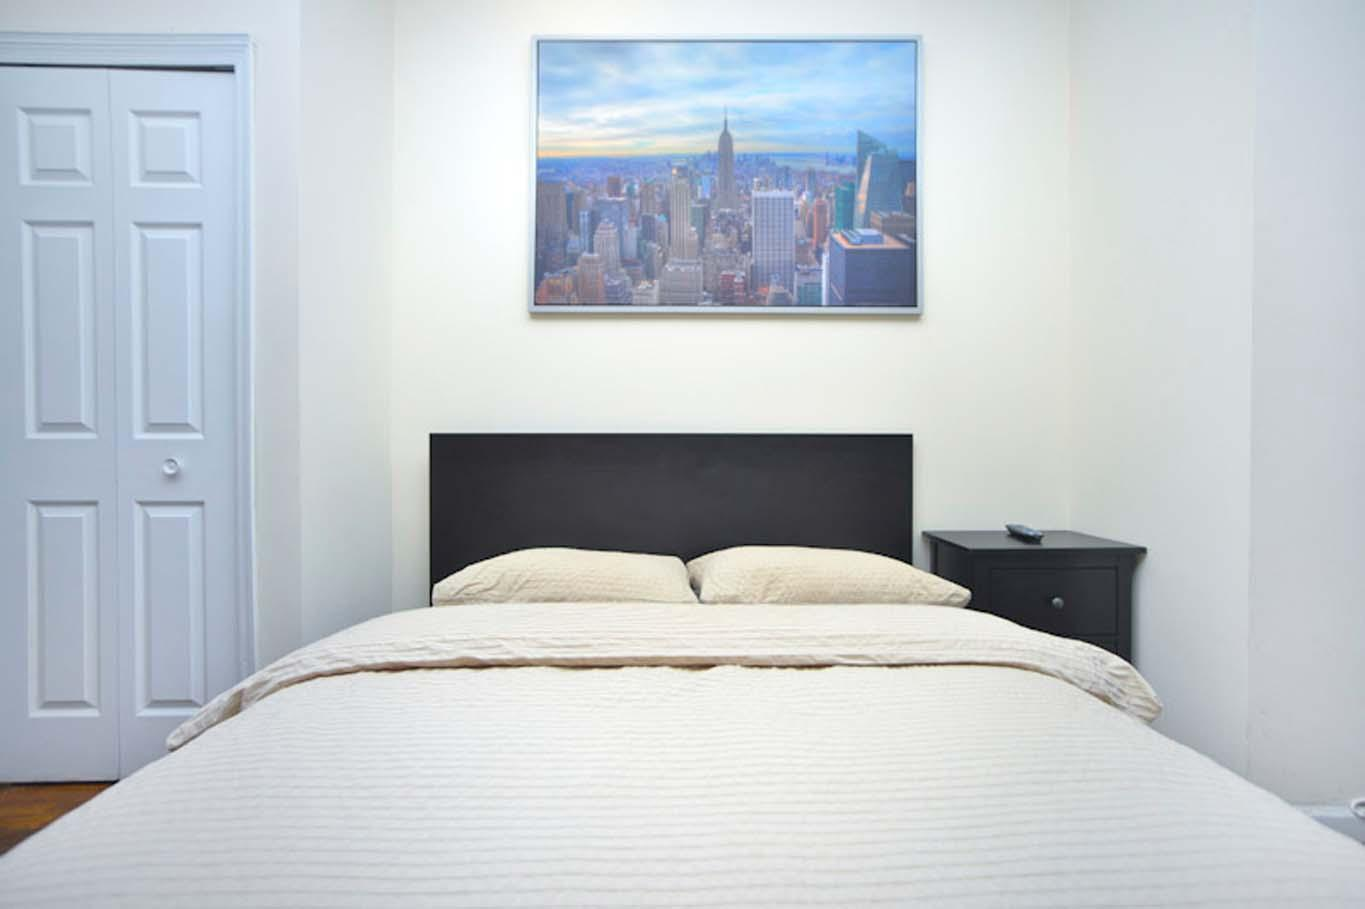 Staycation in New York (NY)